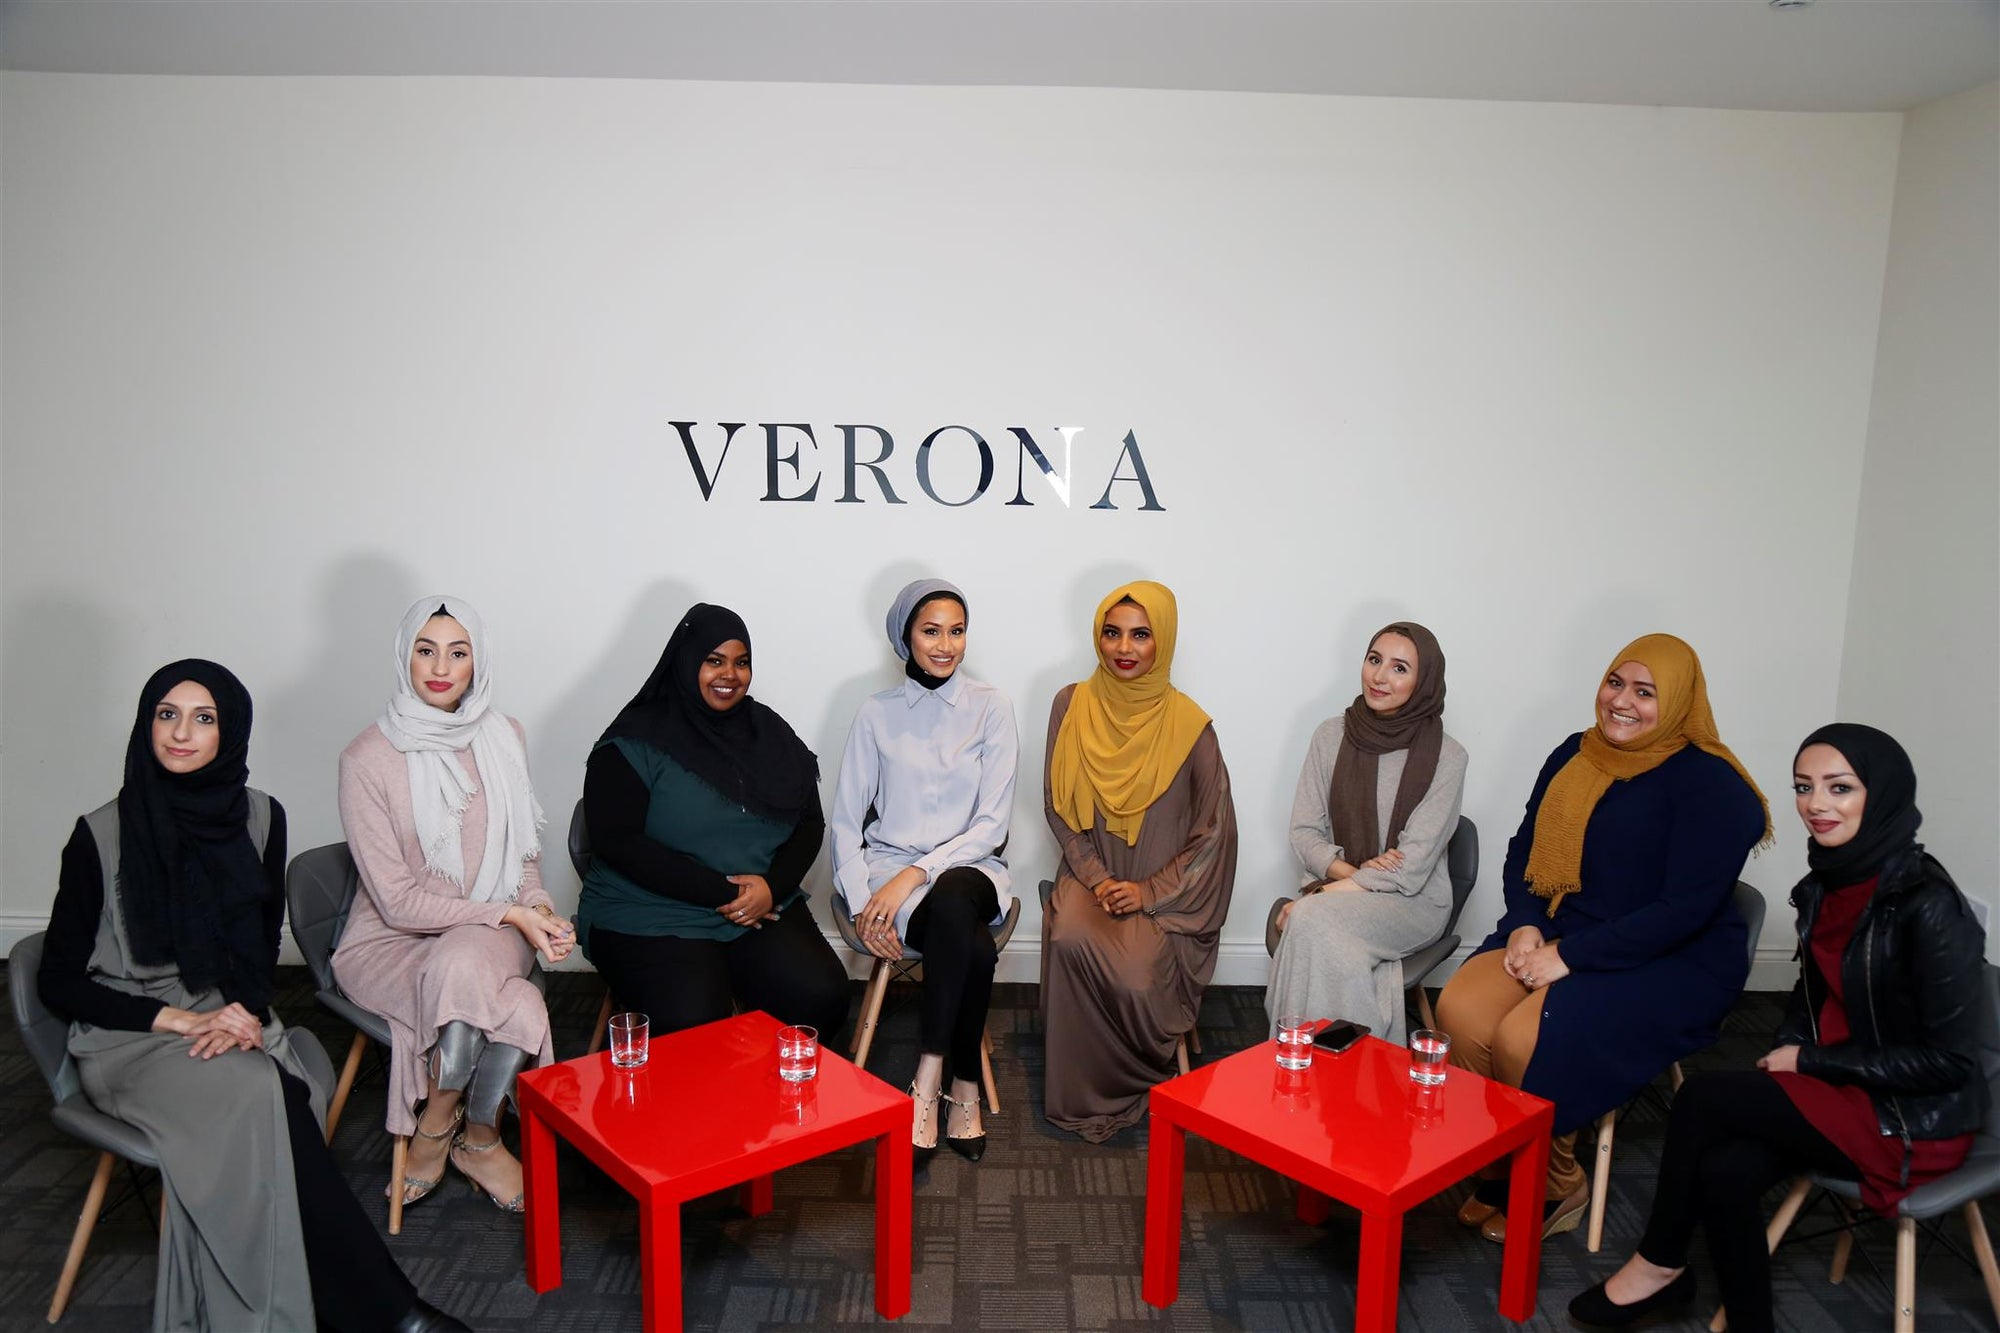 'More than Modest' presented by Verona Collection & The Muslim News